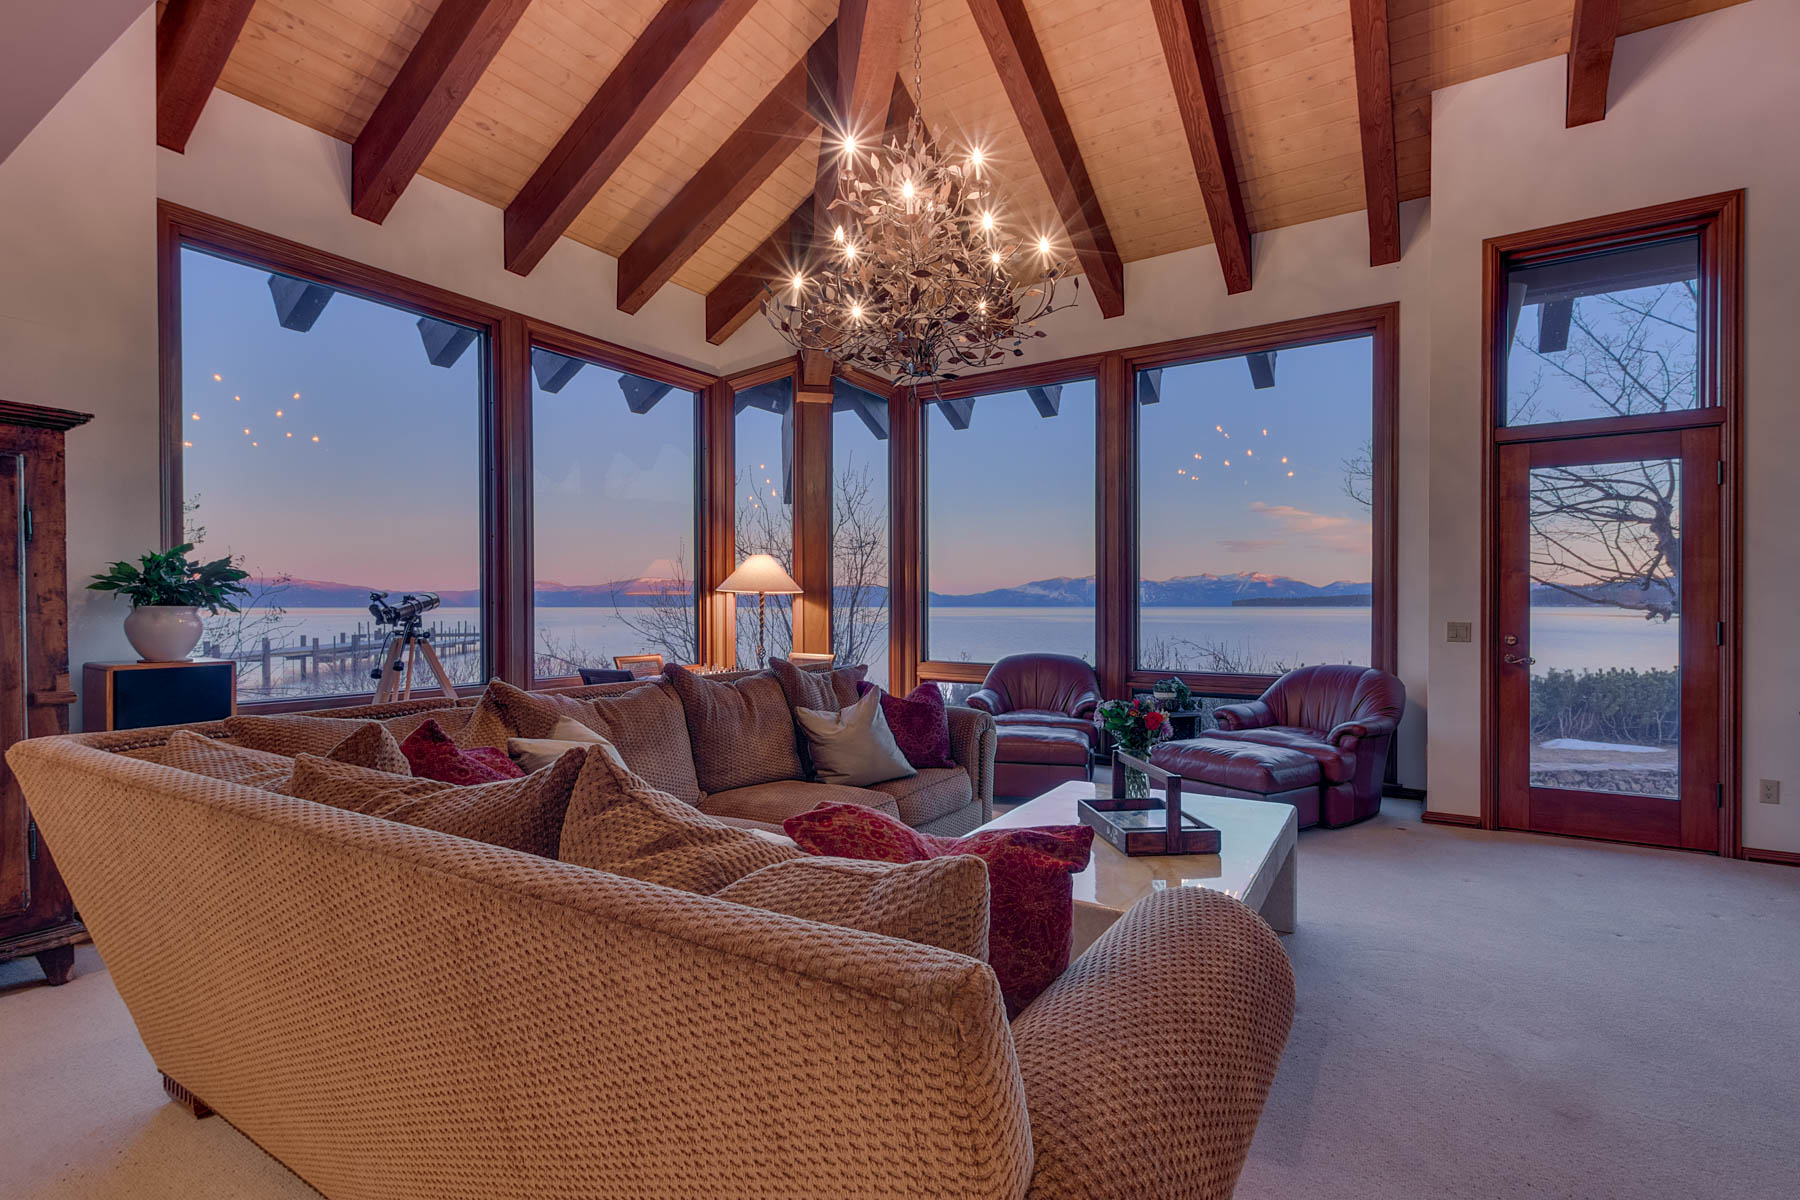 Property for Active at Concierge Living at Lake Tahoe 4000 W Lake Blvd. #20 Homewood, California 96141 United States